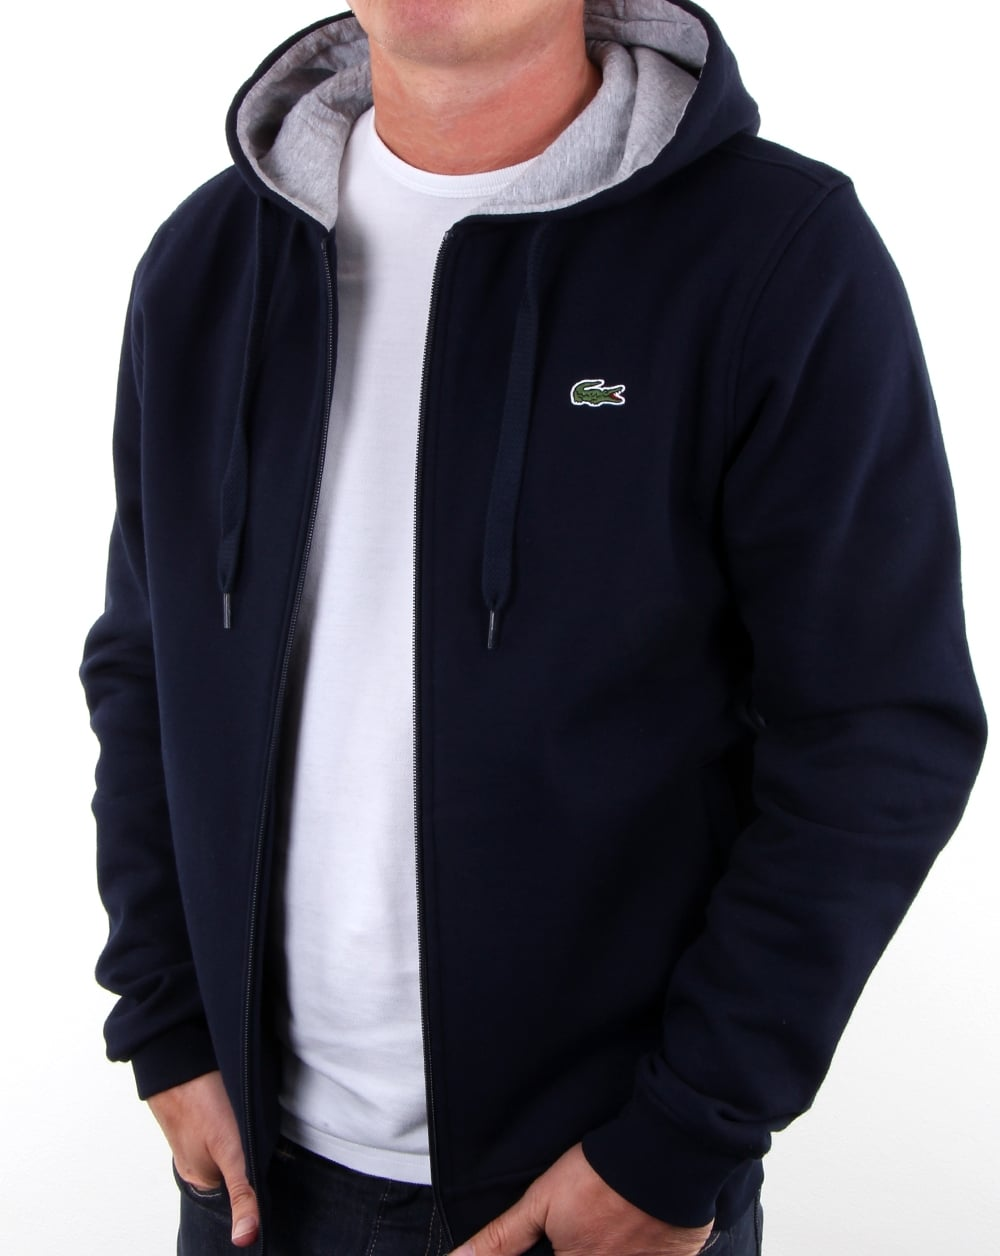 3d0c264ac21fb Lacoste Classic Full Zip Cotton Fleece Hooded Sweatshirt - BCD Tofu ...